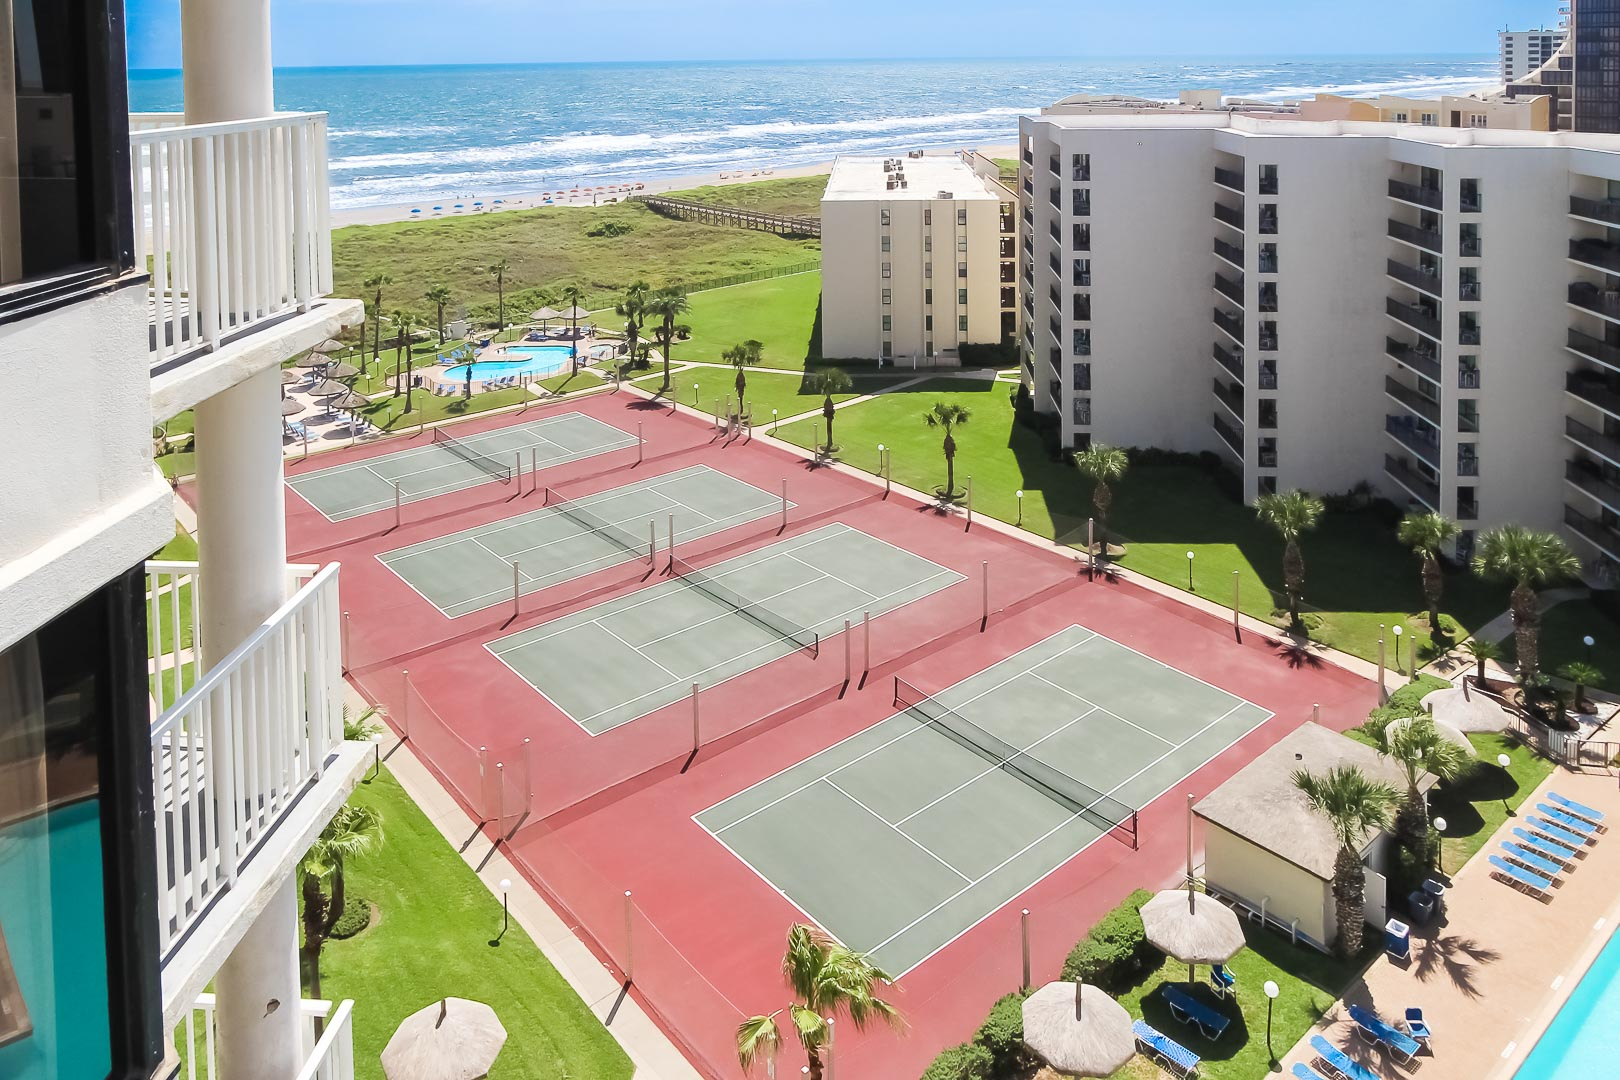 Royale-beach-tennis-Club-23